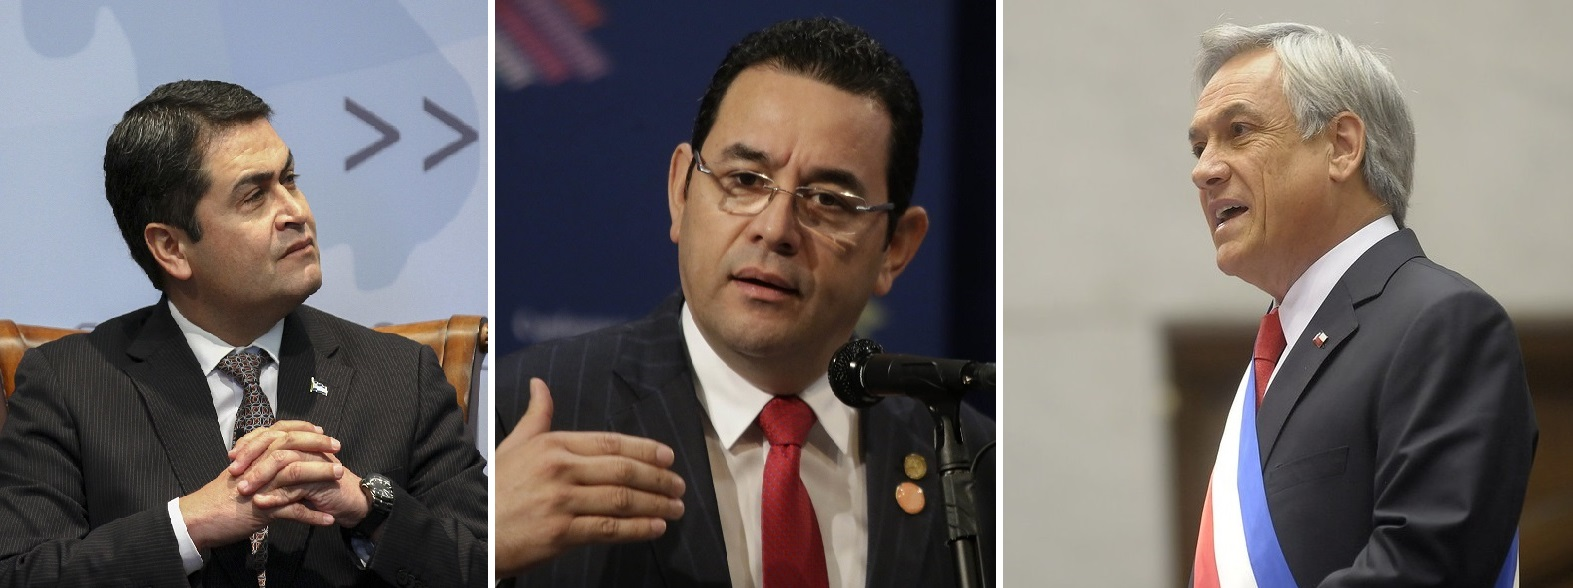 Three presidents who have been singled out for receiving illicit funding in their campaigns: Juan Orlando Hernández, from Honduras; Sebastián Piñera, from Chile, and Jimmy Morales, from Guatemala. Image credit: Presdiencia El Salvador, CSIS, Gobierno de Chile@flckr